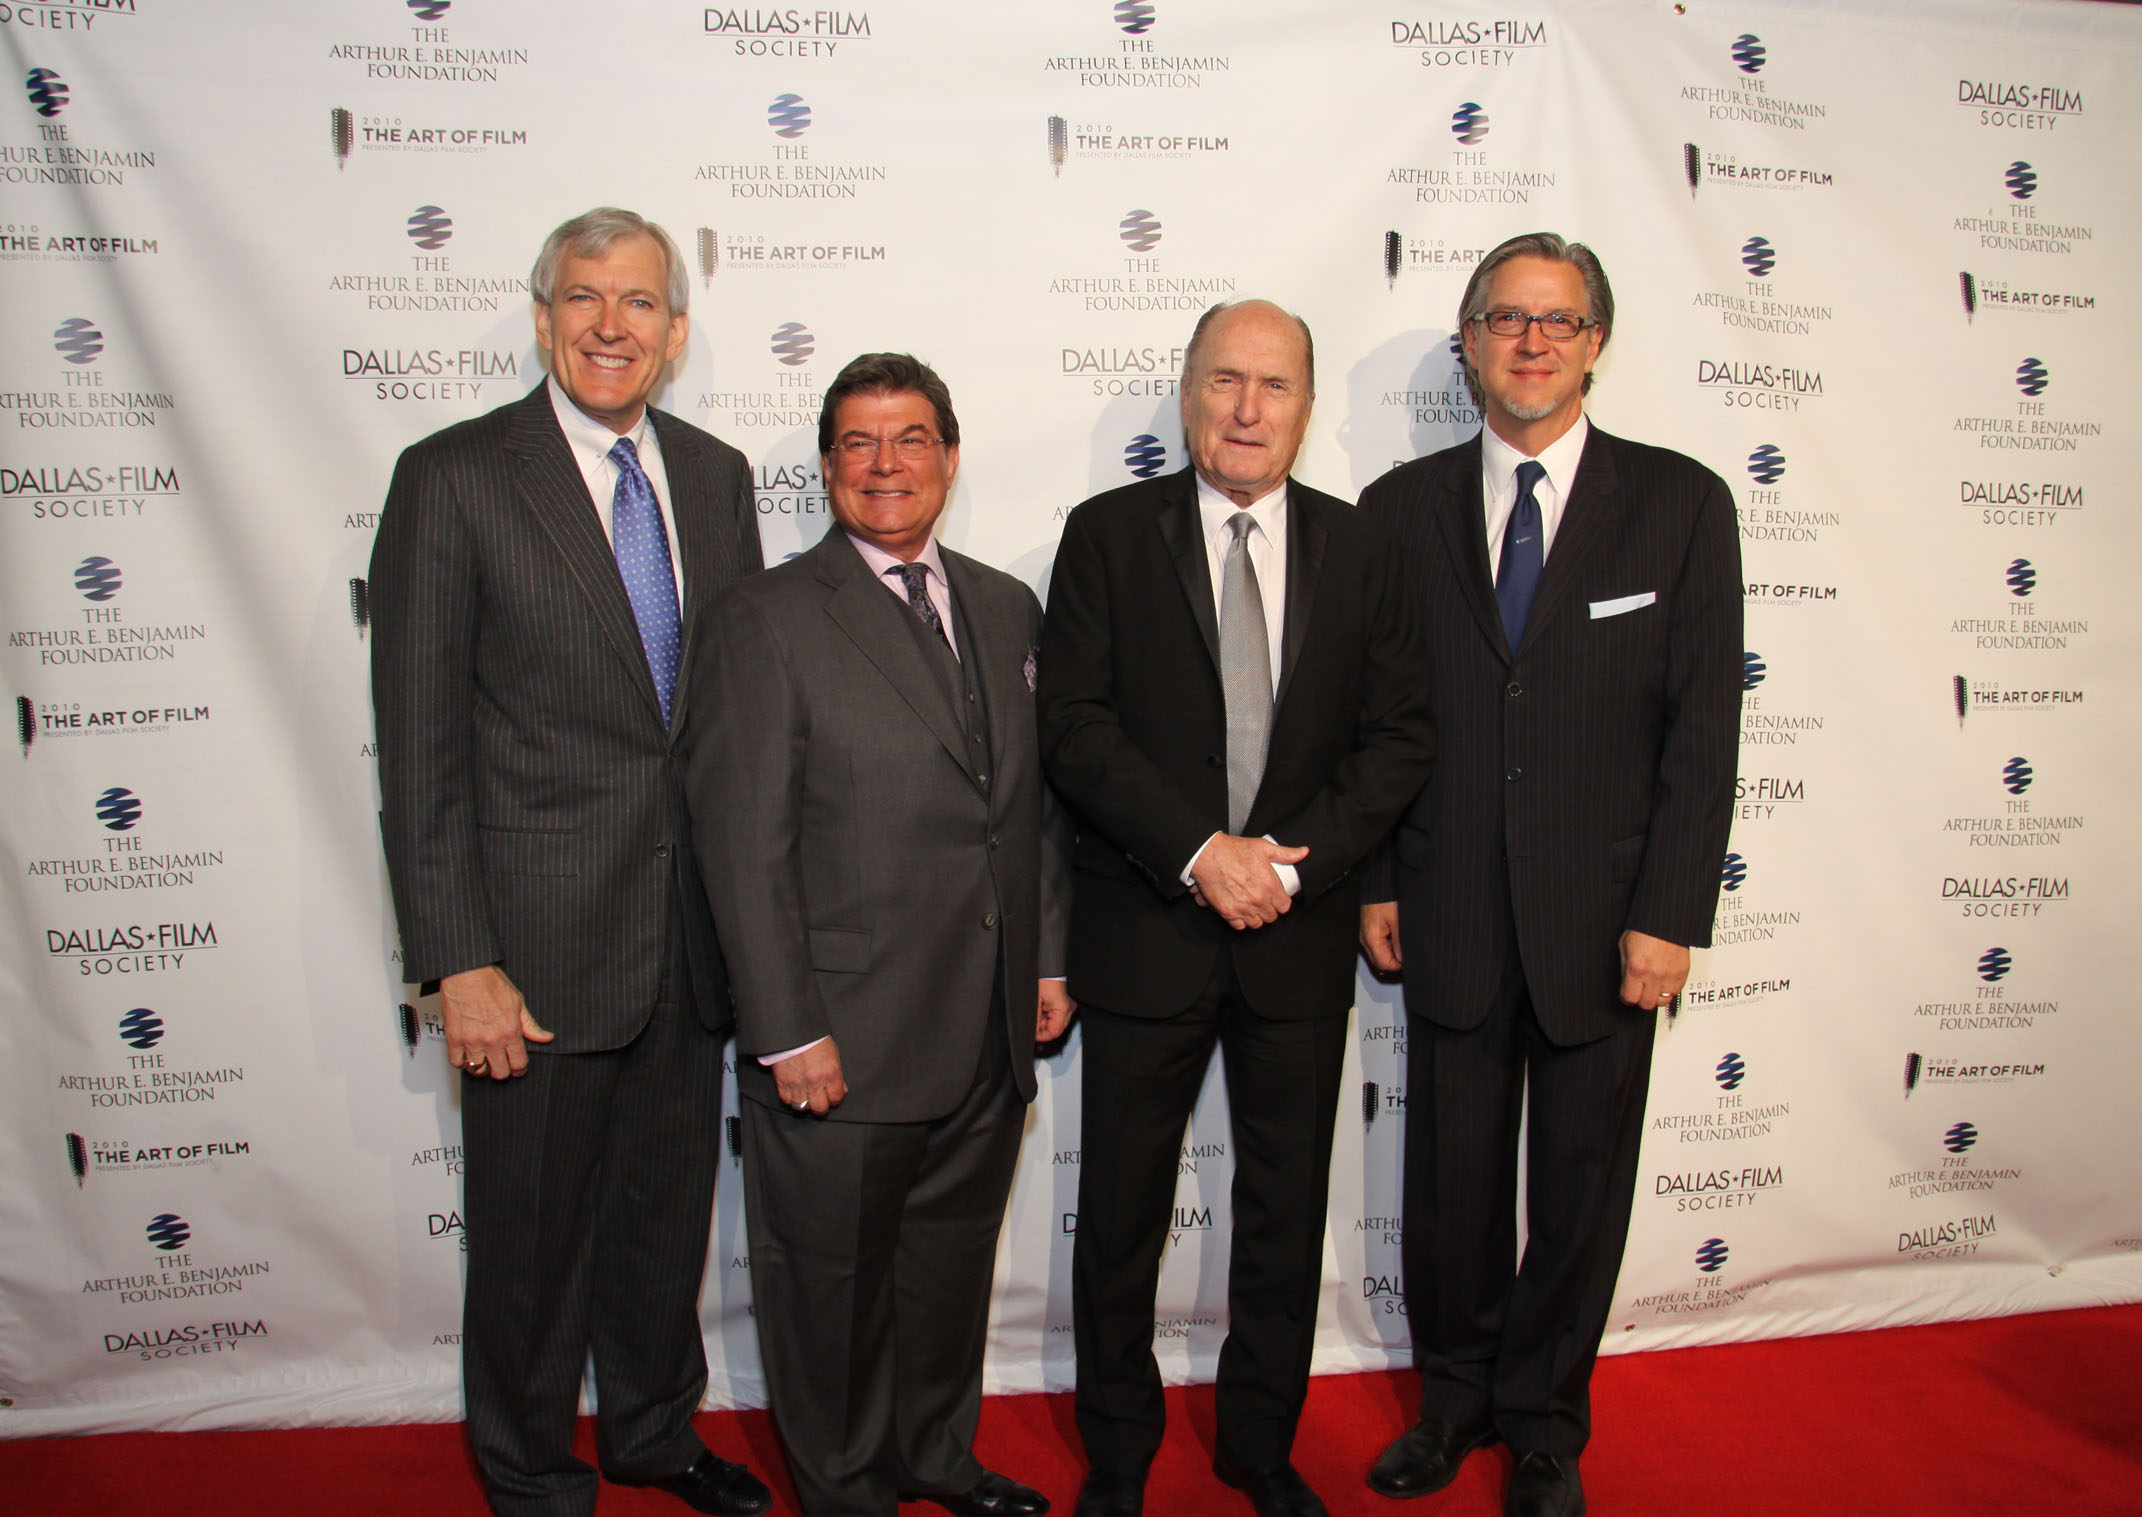 Dallas Mayor Tom Leppert, Arthur E. Benjamin, Robert Duvall, Michael Cain